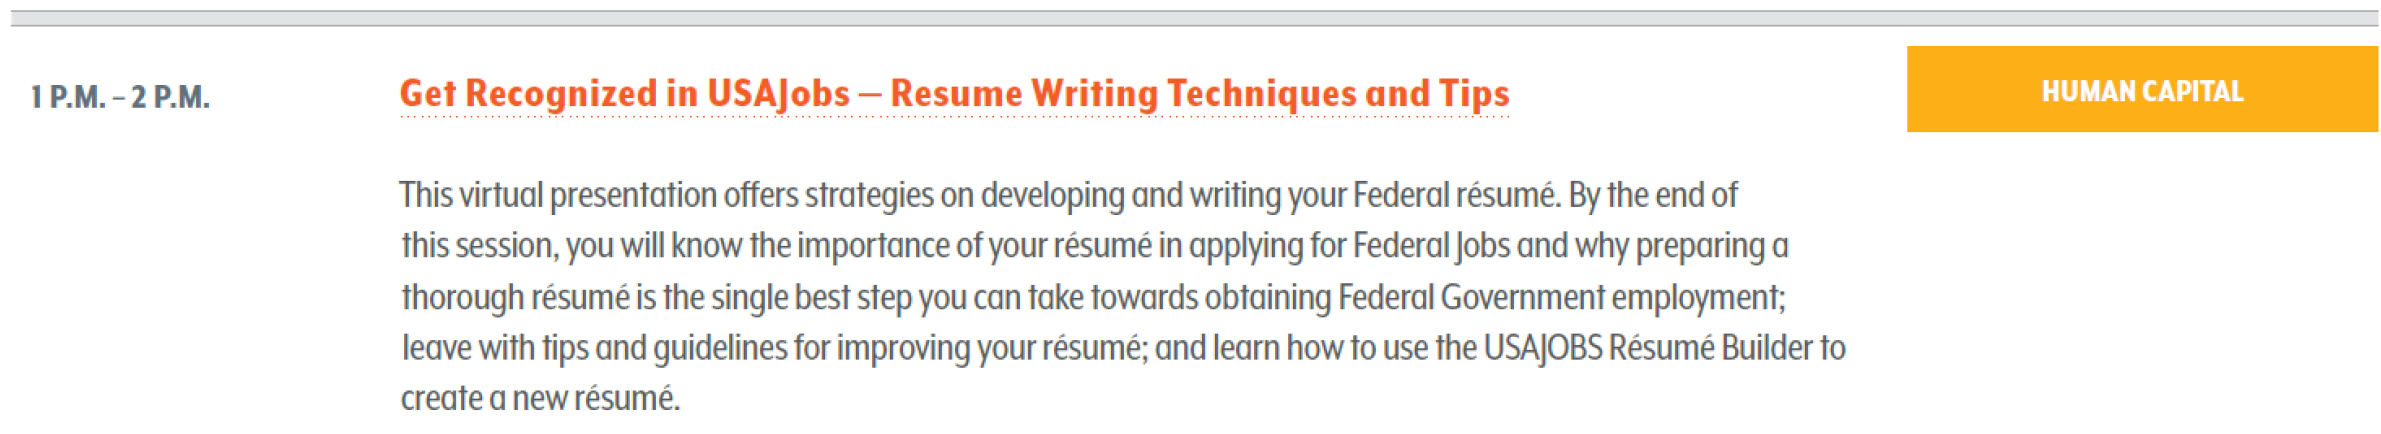 This virtual presentation offers strategies on developing and writing your Federal résumé. By the end of this session, you will know the importance of your résumé in applying for Federal Jobs and why preparing a thorough résumé is the single best step you can take towards obtaining Federal Government employment; leave with tips and guidelines for improving your résumé; and learn how to use the USAJOBS Résumé Builder to create a new résumé.